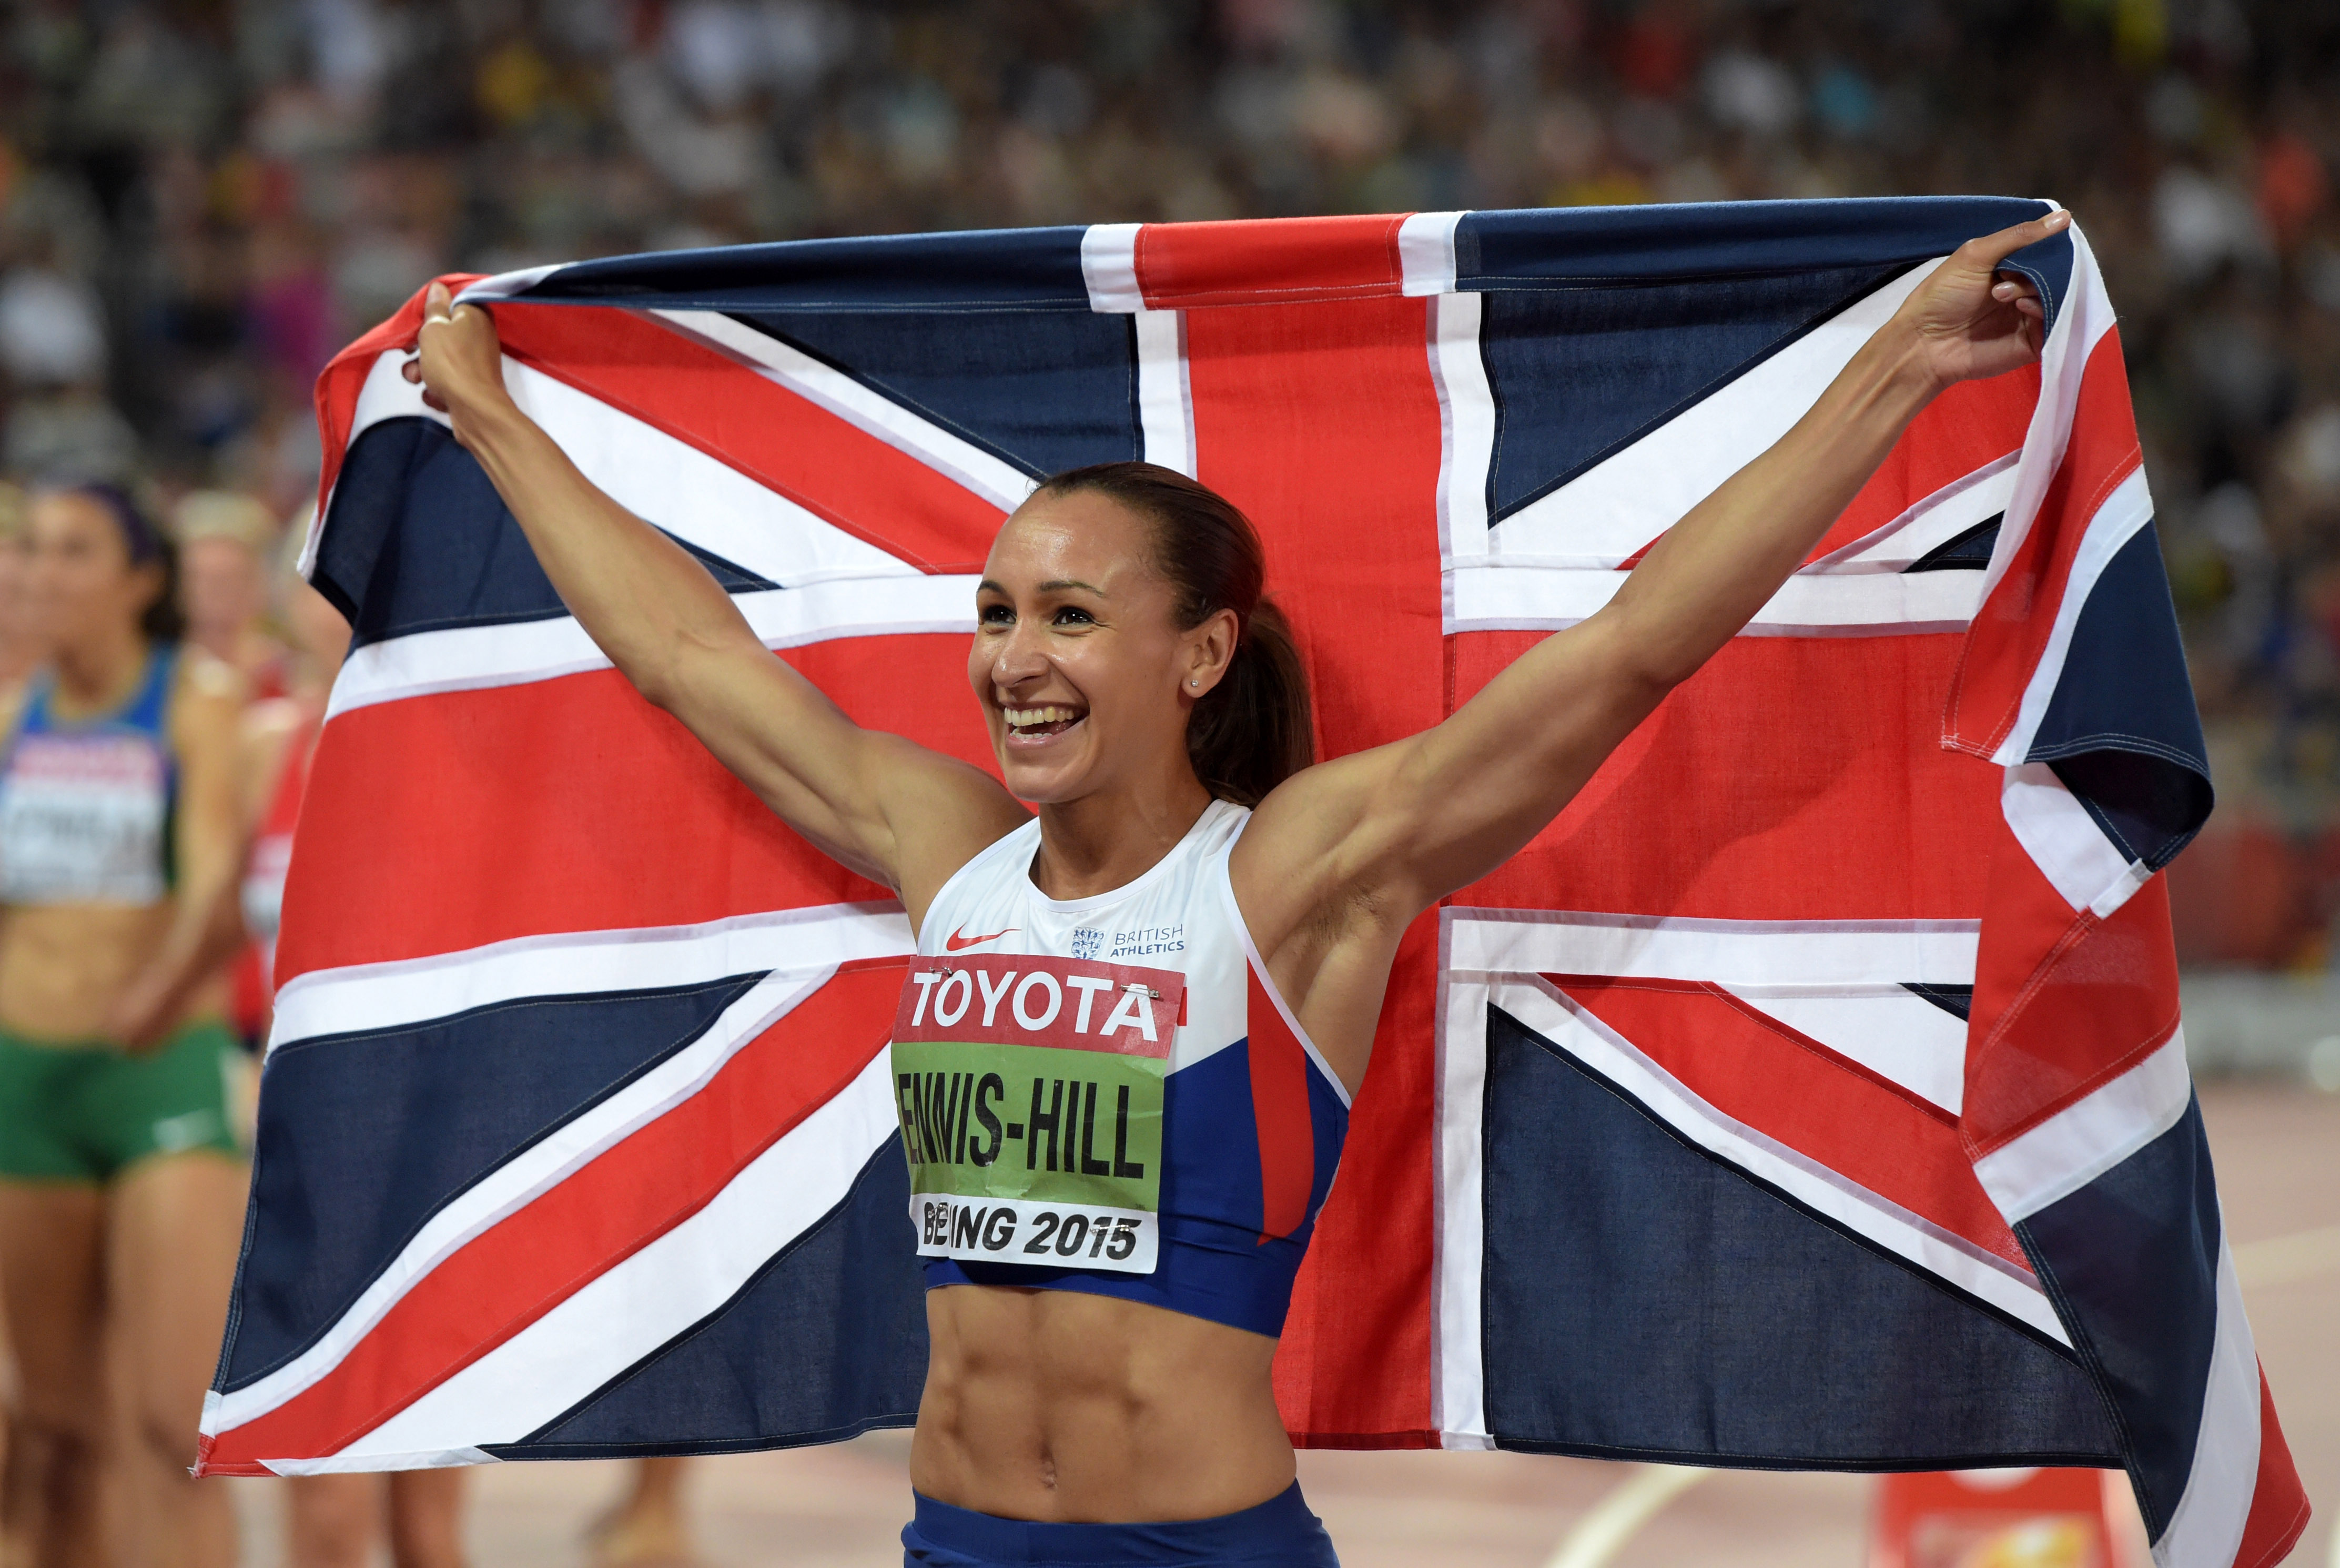 Aug 23, 2015; Beijing, China; Jessica Ennis-Hill (GBR) poses with British flag after winning the heptathlon with 6,669 points during the IAAF World Championships in Athletics at National Stadium. Mandatory Credit: Kirby Lee-USA TODAY Sports / Reuters Picture Supplied by Action Images *** Local Caption *** 2015-08-23T161551Z_551337508_NOCID_RTRMADP_3_TRACK-AND-FIELD-IAAF-WORLD-CHAMPIONSHIPS-IN-ATHLETICS-EVENING-SESSION.JPG